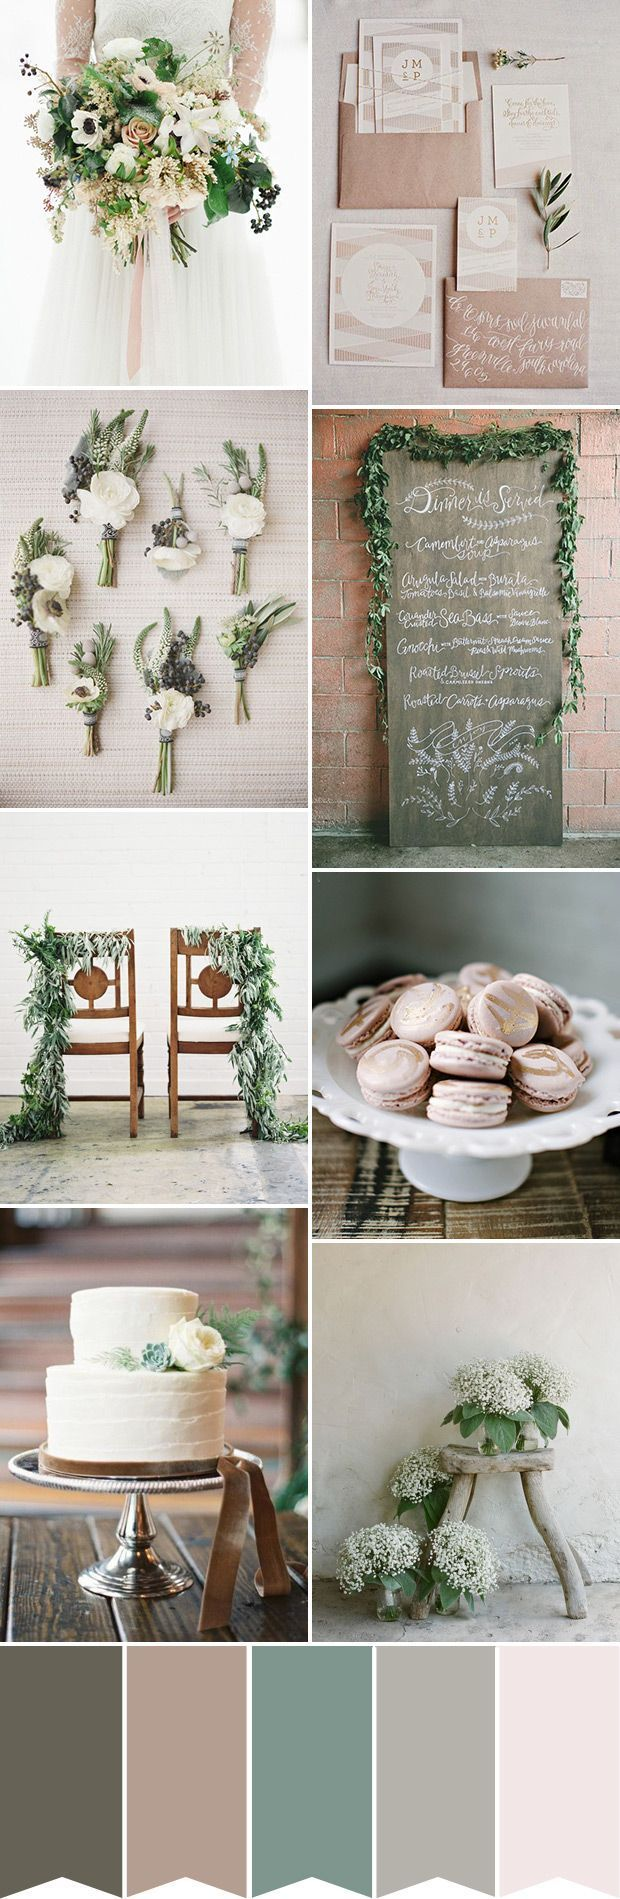 A simple and chic rustic wedding color palette | www.onefabday.com